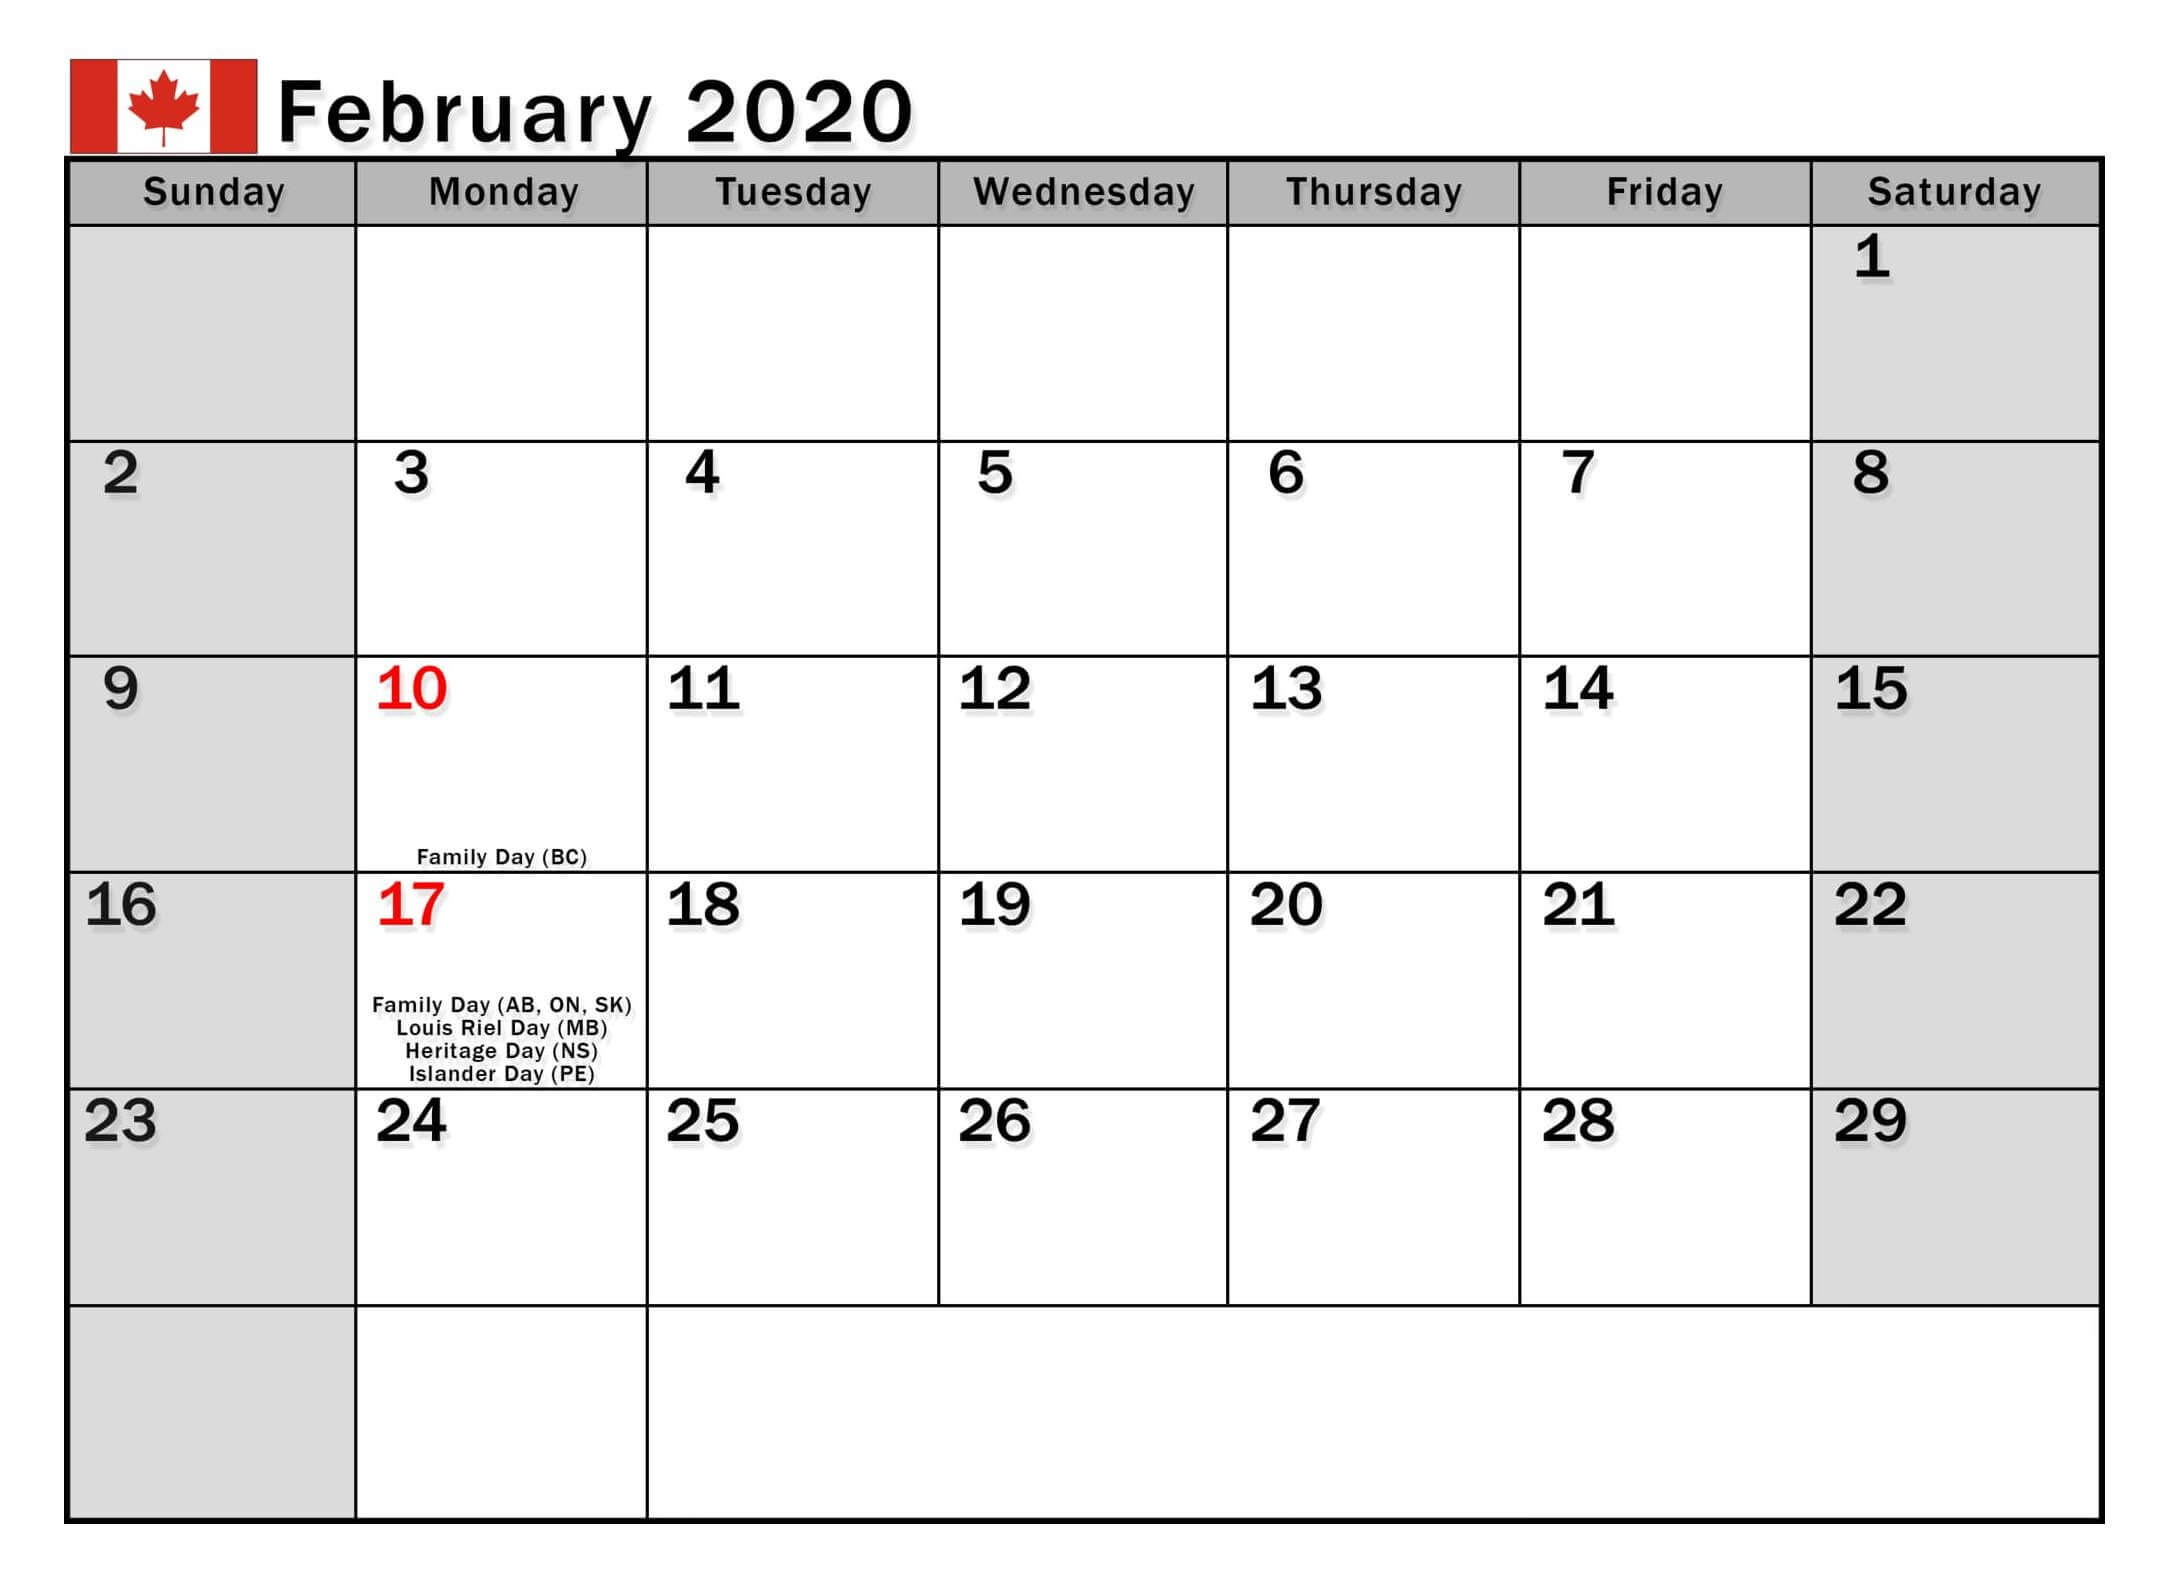 February 2020 Calendar Canada Bank Holidays - 2019 Calendars for Printable Canadian Calendar With Holidays